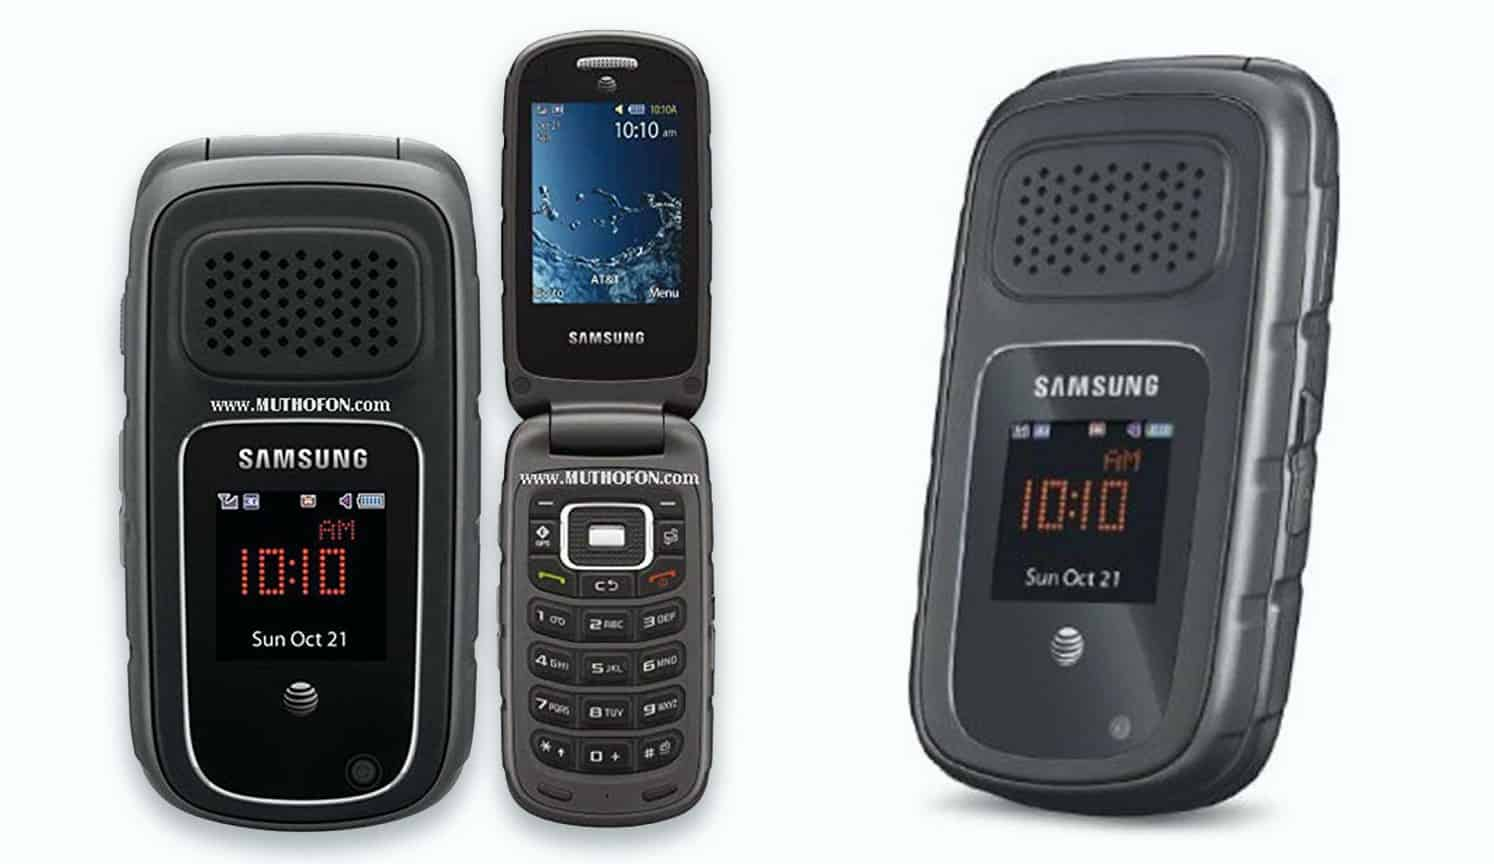 Unlocked Flip Phone as the first related product of the Best Unlocked Cell Phones